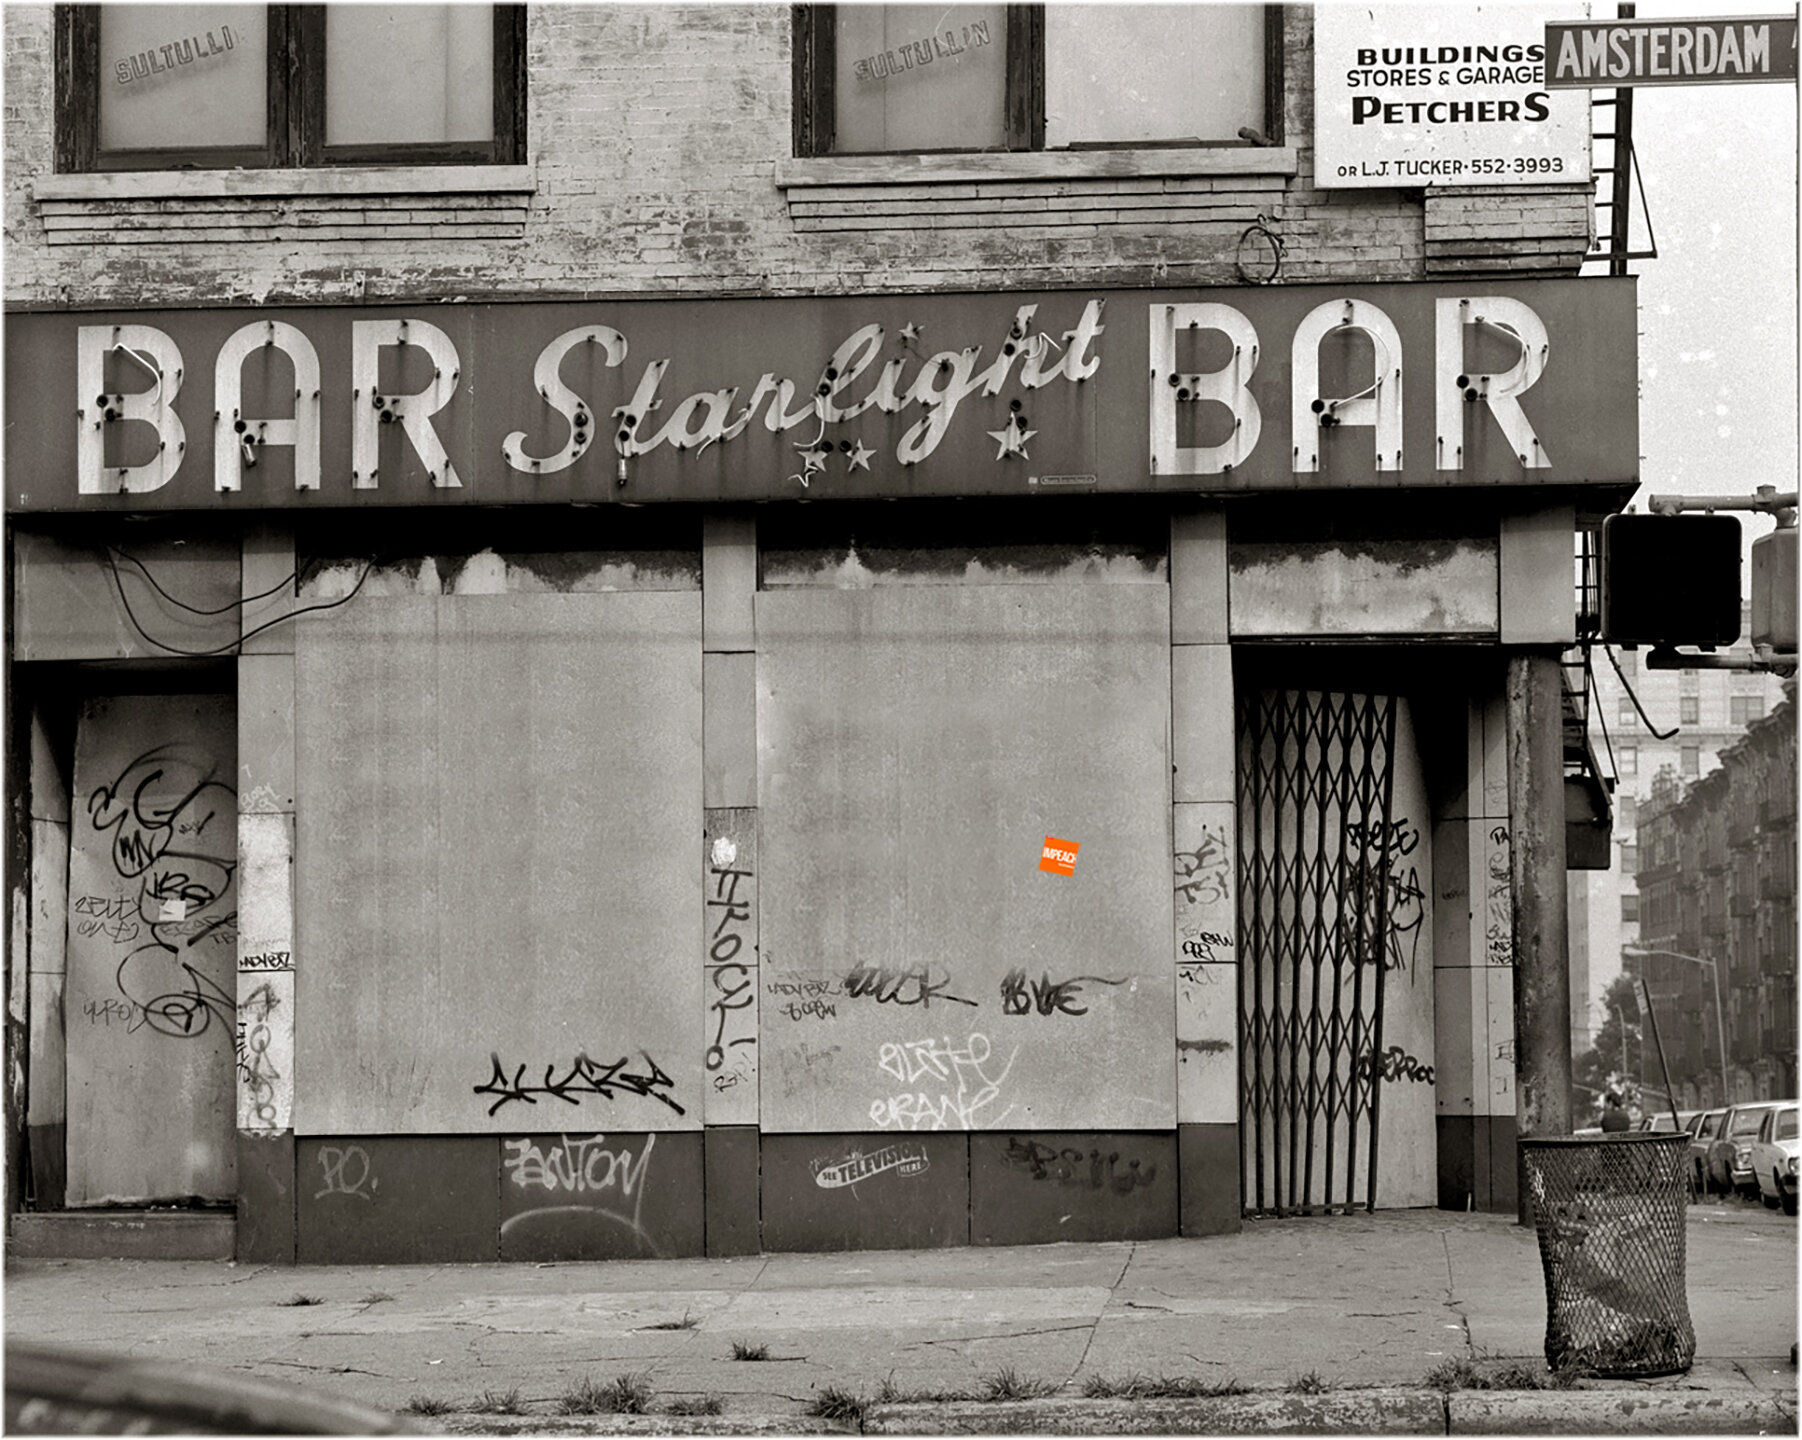 STARLIGHT BAR@144.jpg